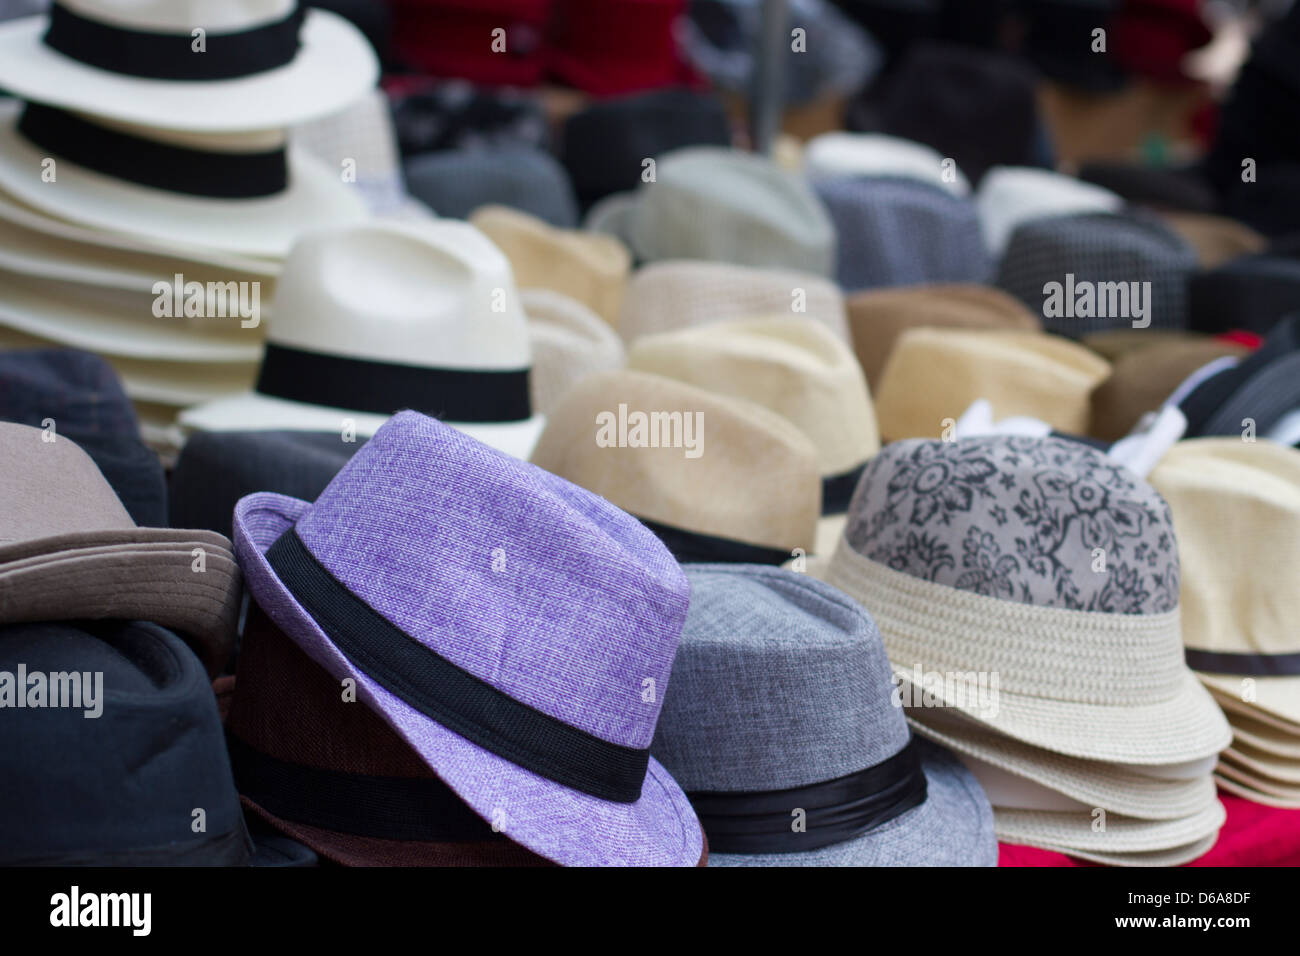 Hats for sale at a market - Stock Image